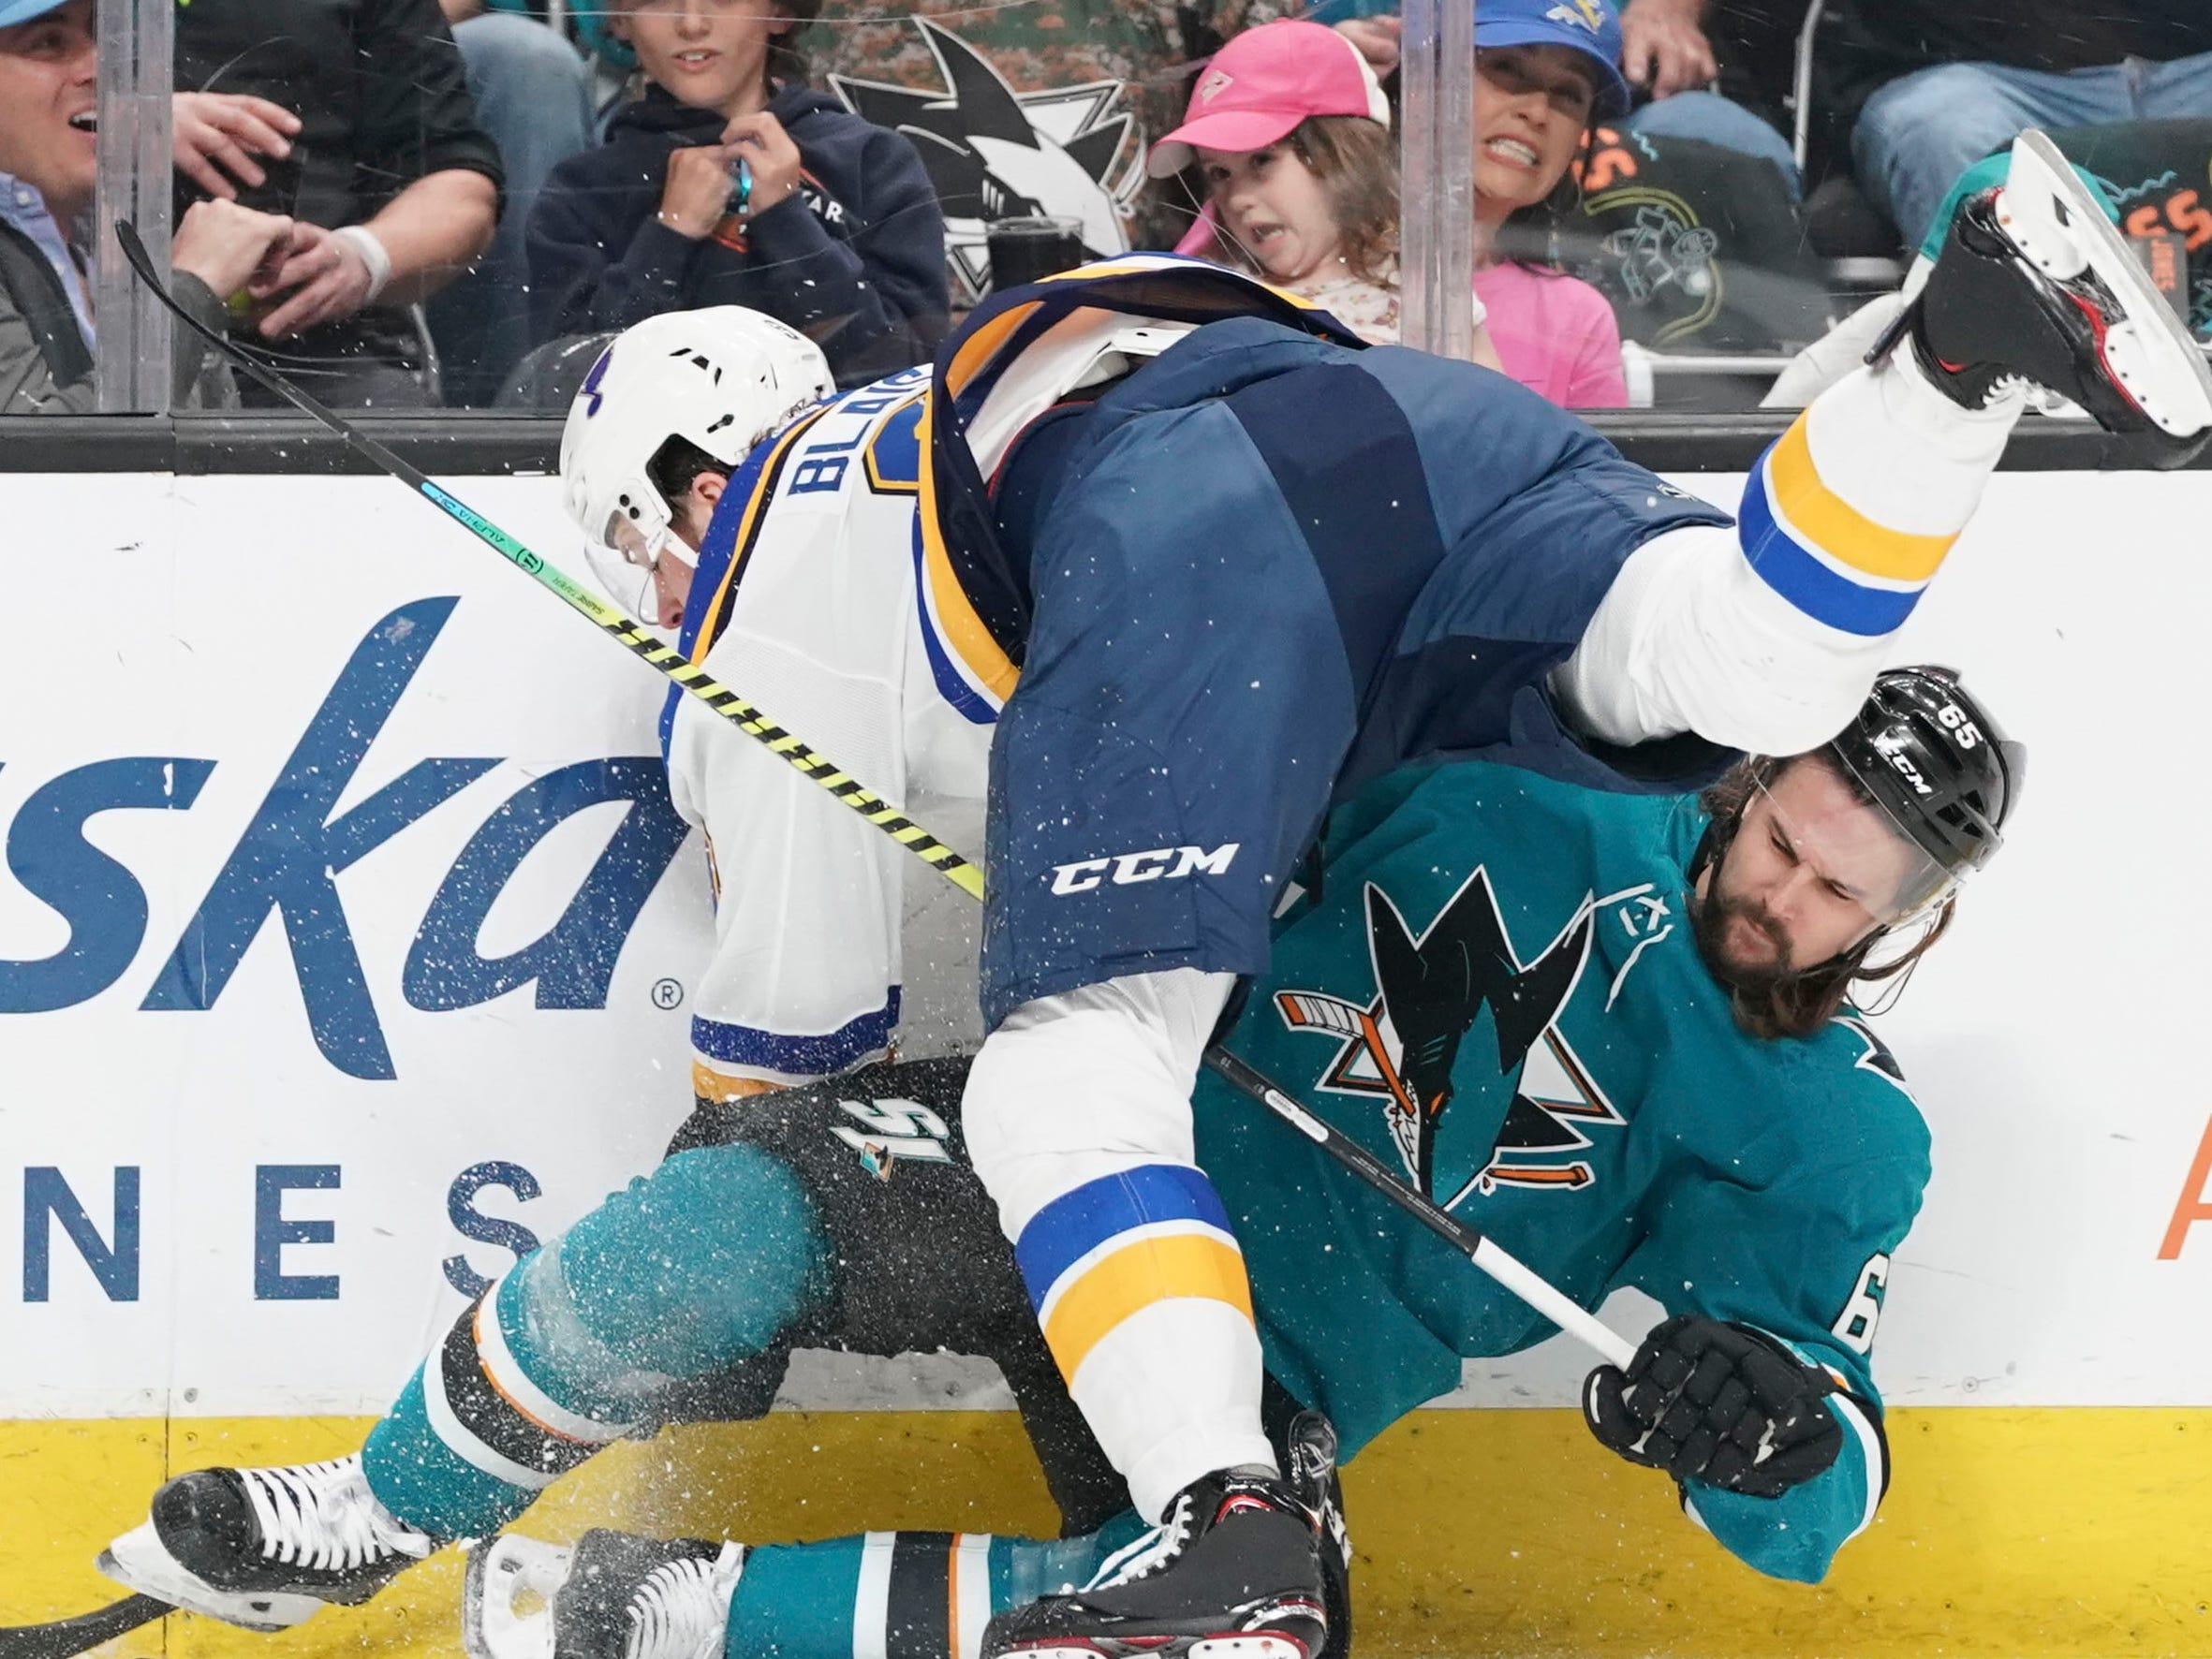 Blues left wing Sammy Blais checks Sharks defenseman Erik Karlsson during Game 1. The Blues plan to play physical hockey against the Sharks star.